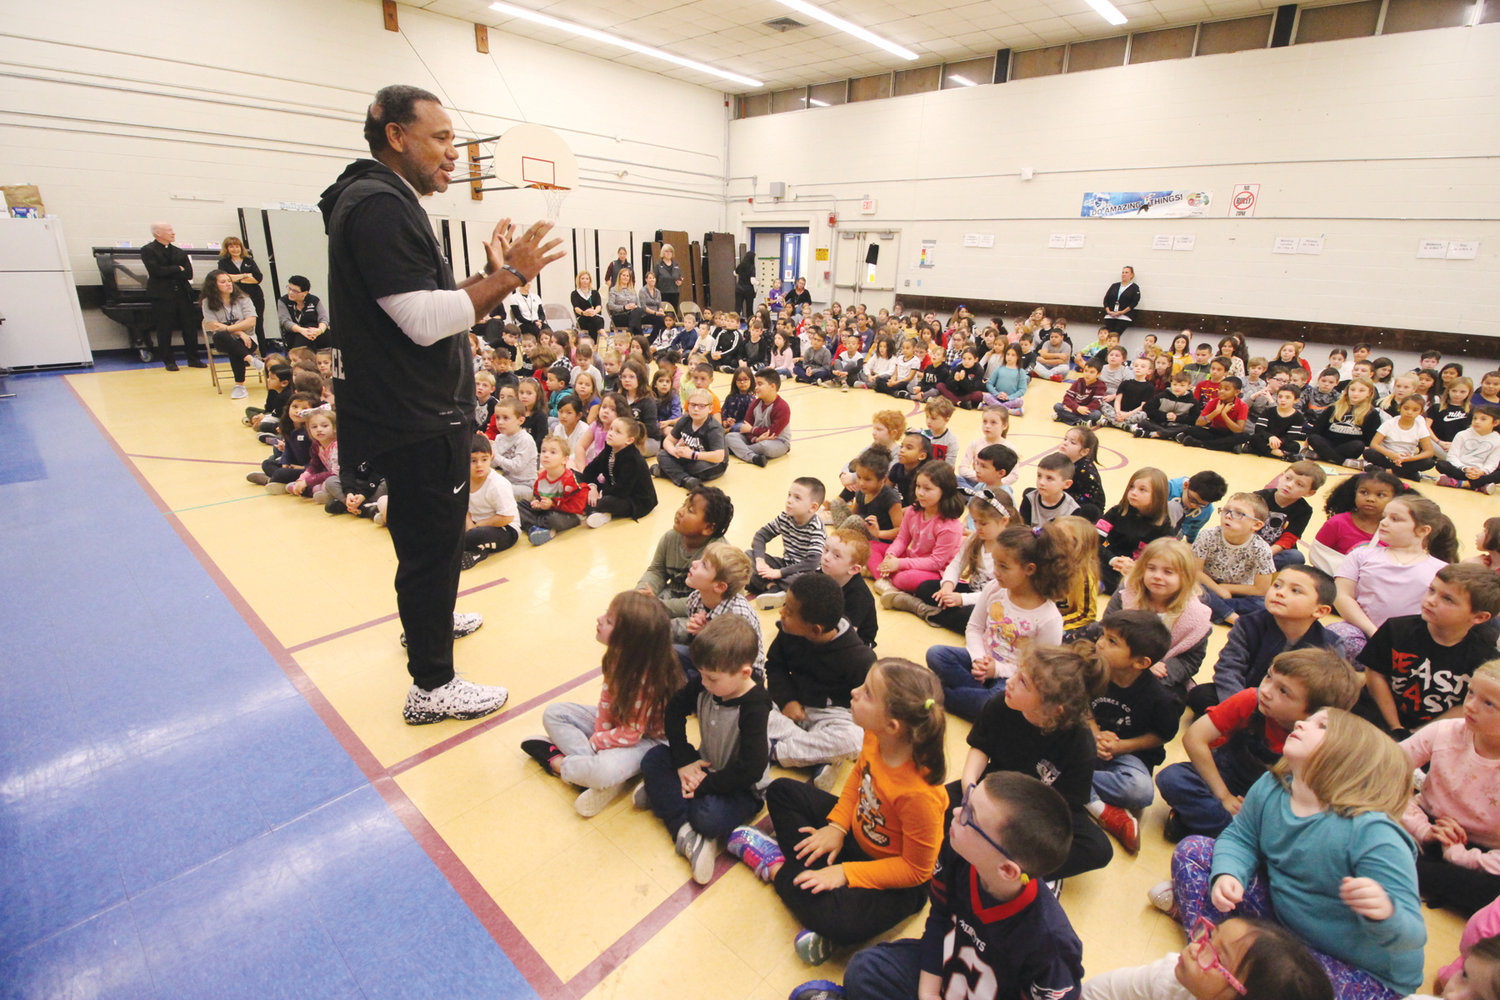 FOLLOW YOUR PASSION: PC Coach Cooley delivered an inspirational message to Norwood students Monday. Cooley asked to visit the school where Patti Shanley teaches.